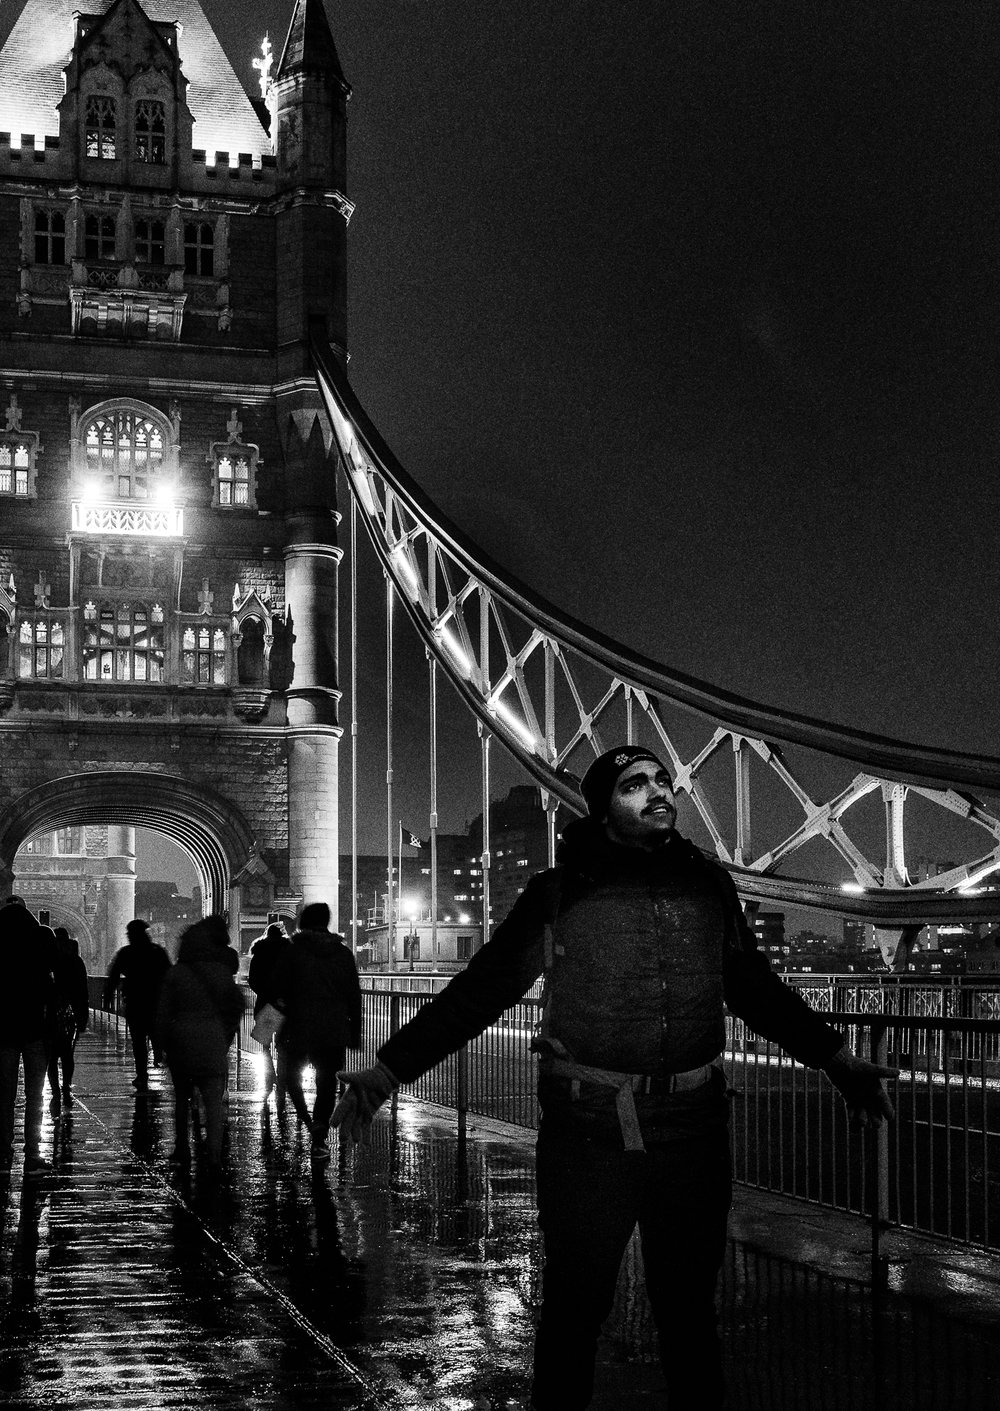 Tower Bridge. ISO3200 as described in text, processed through SilverFX.